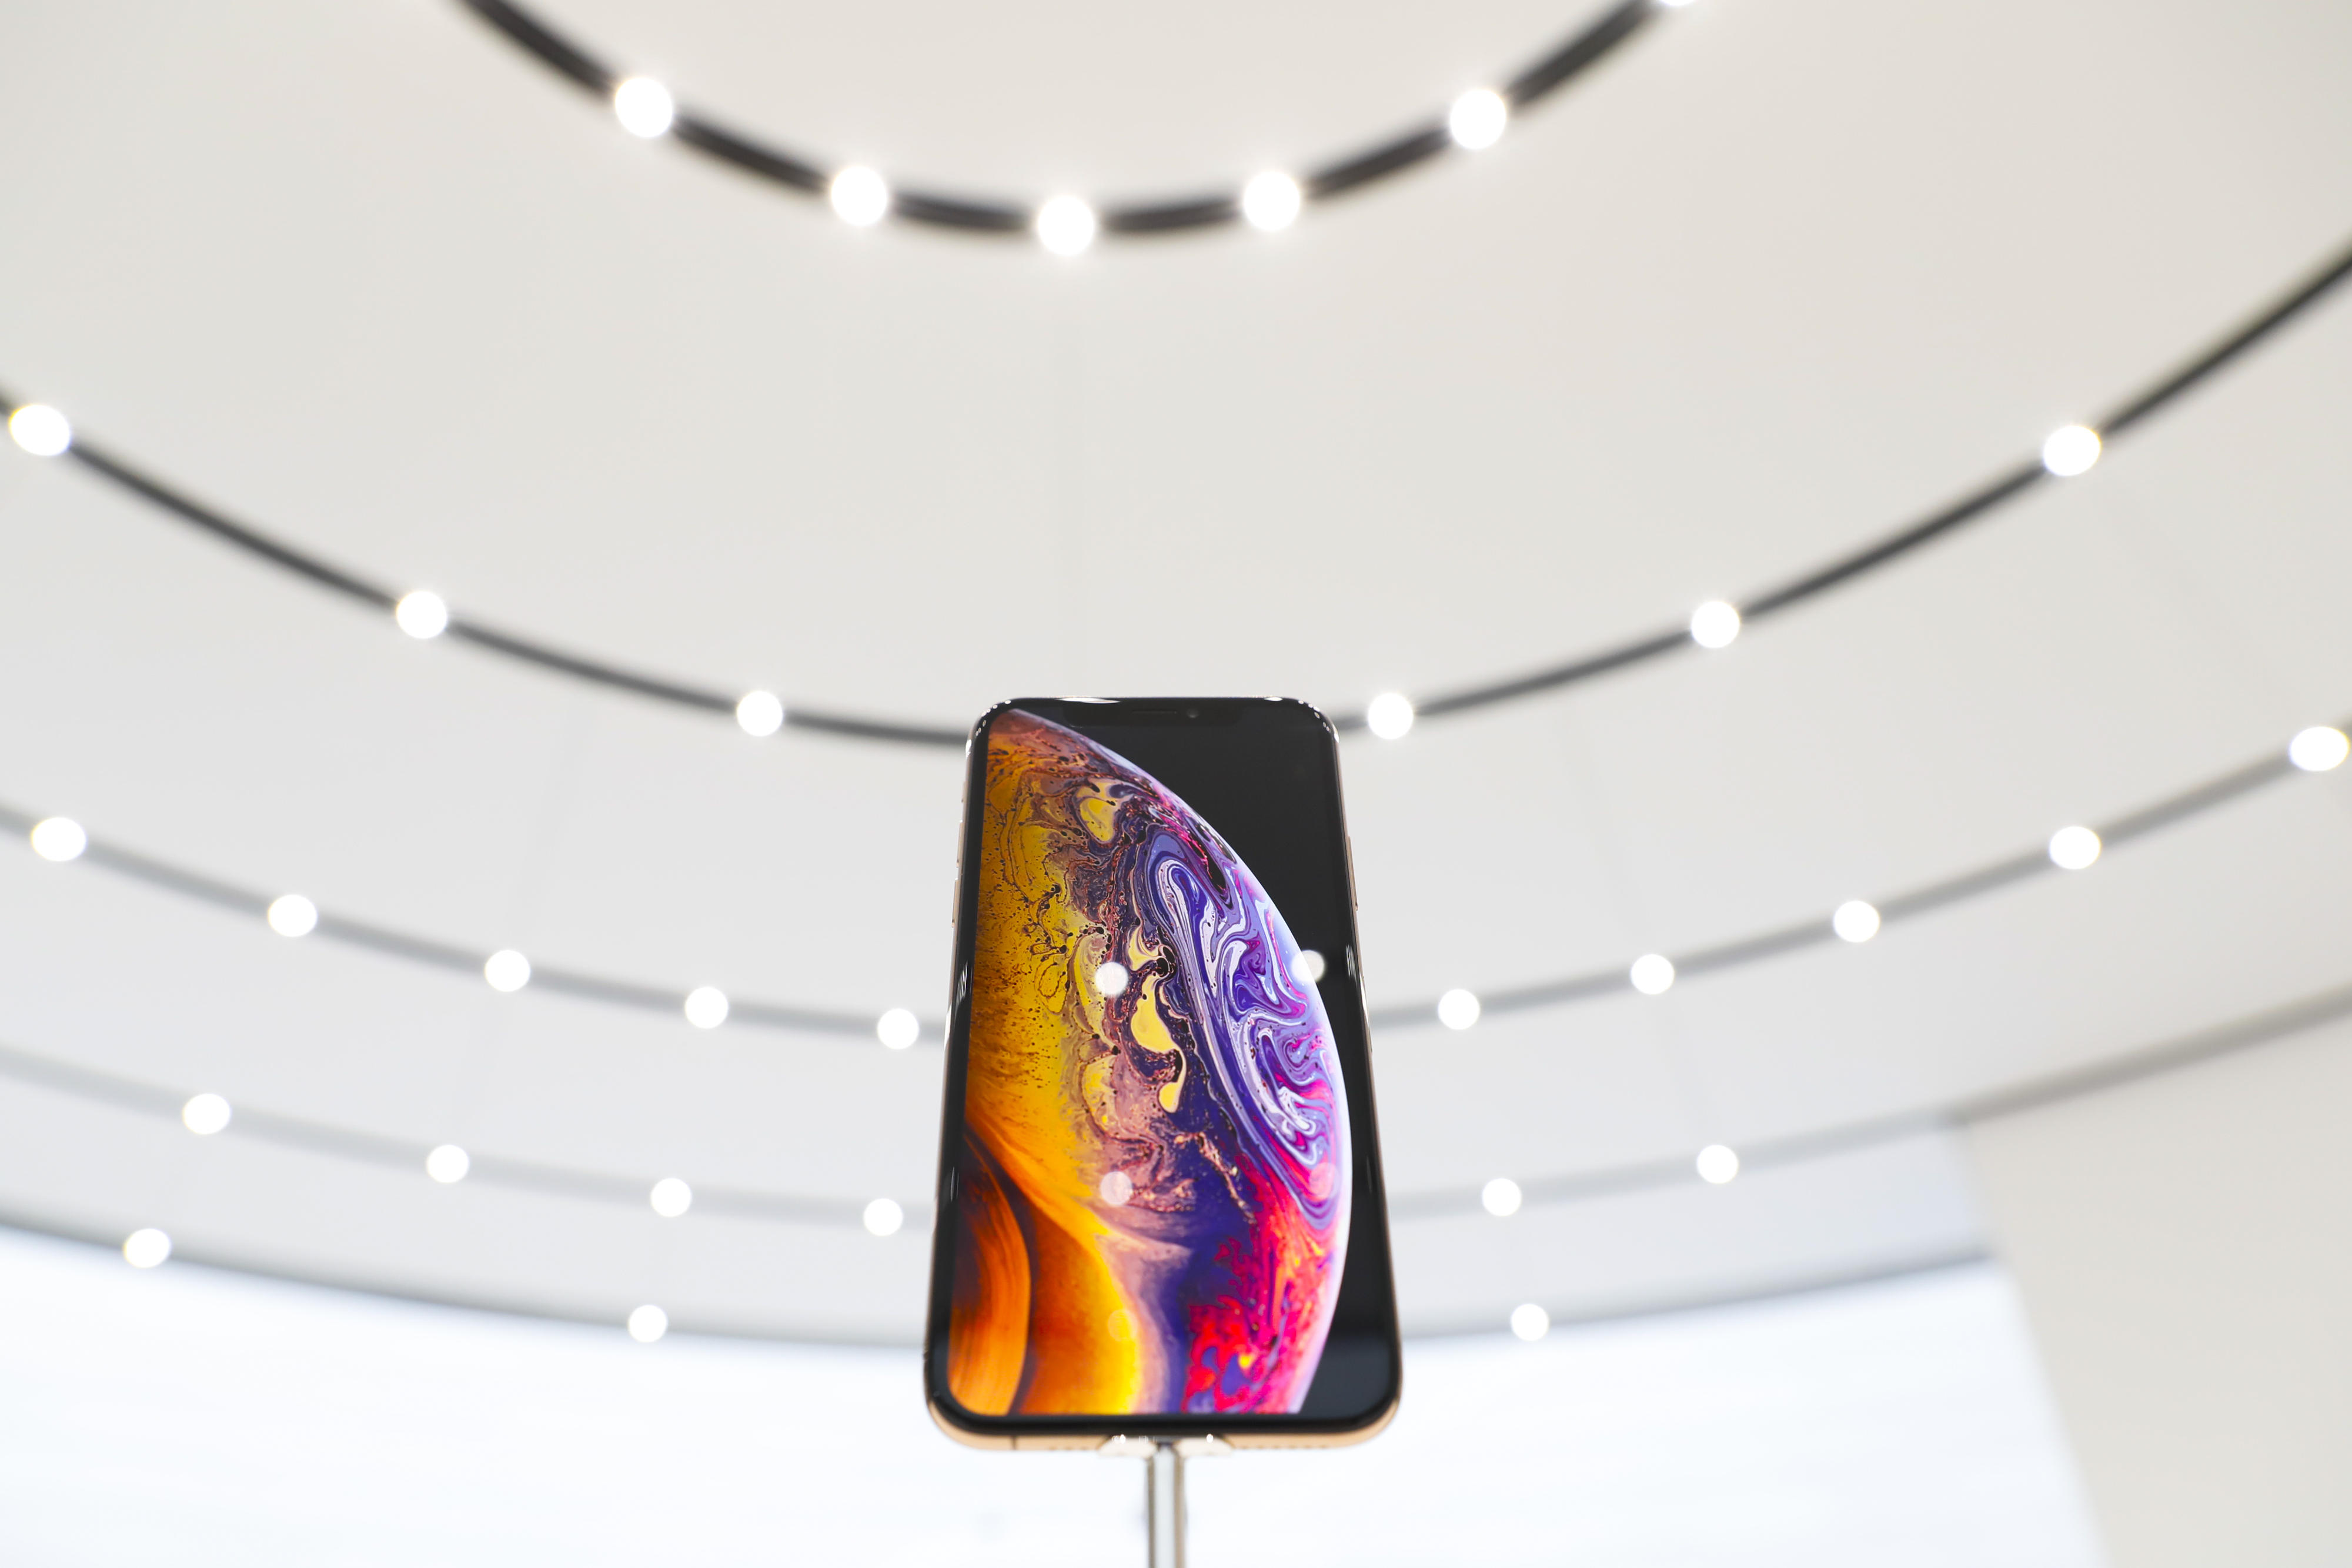 apple-event-091218-xs-max-0848